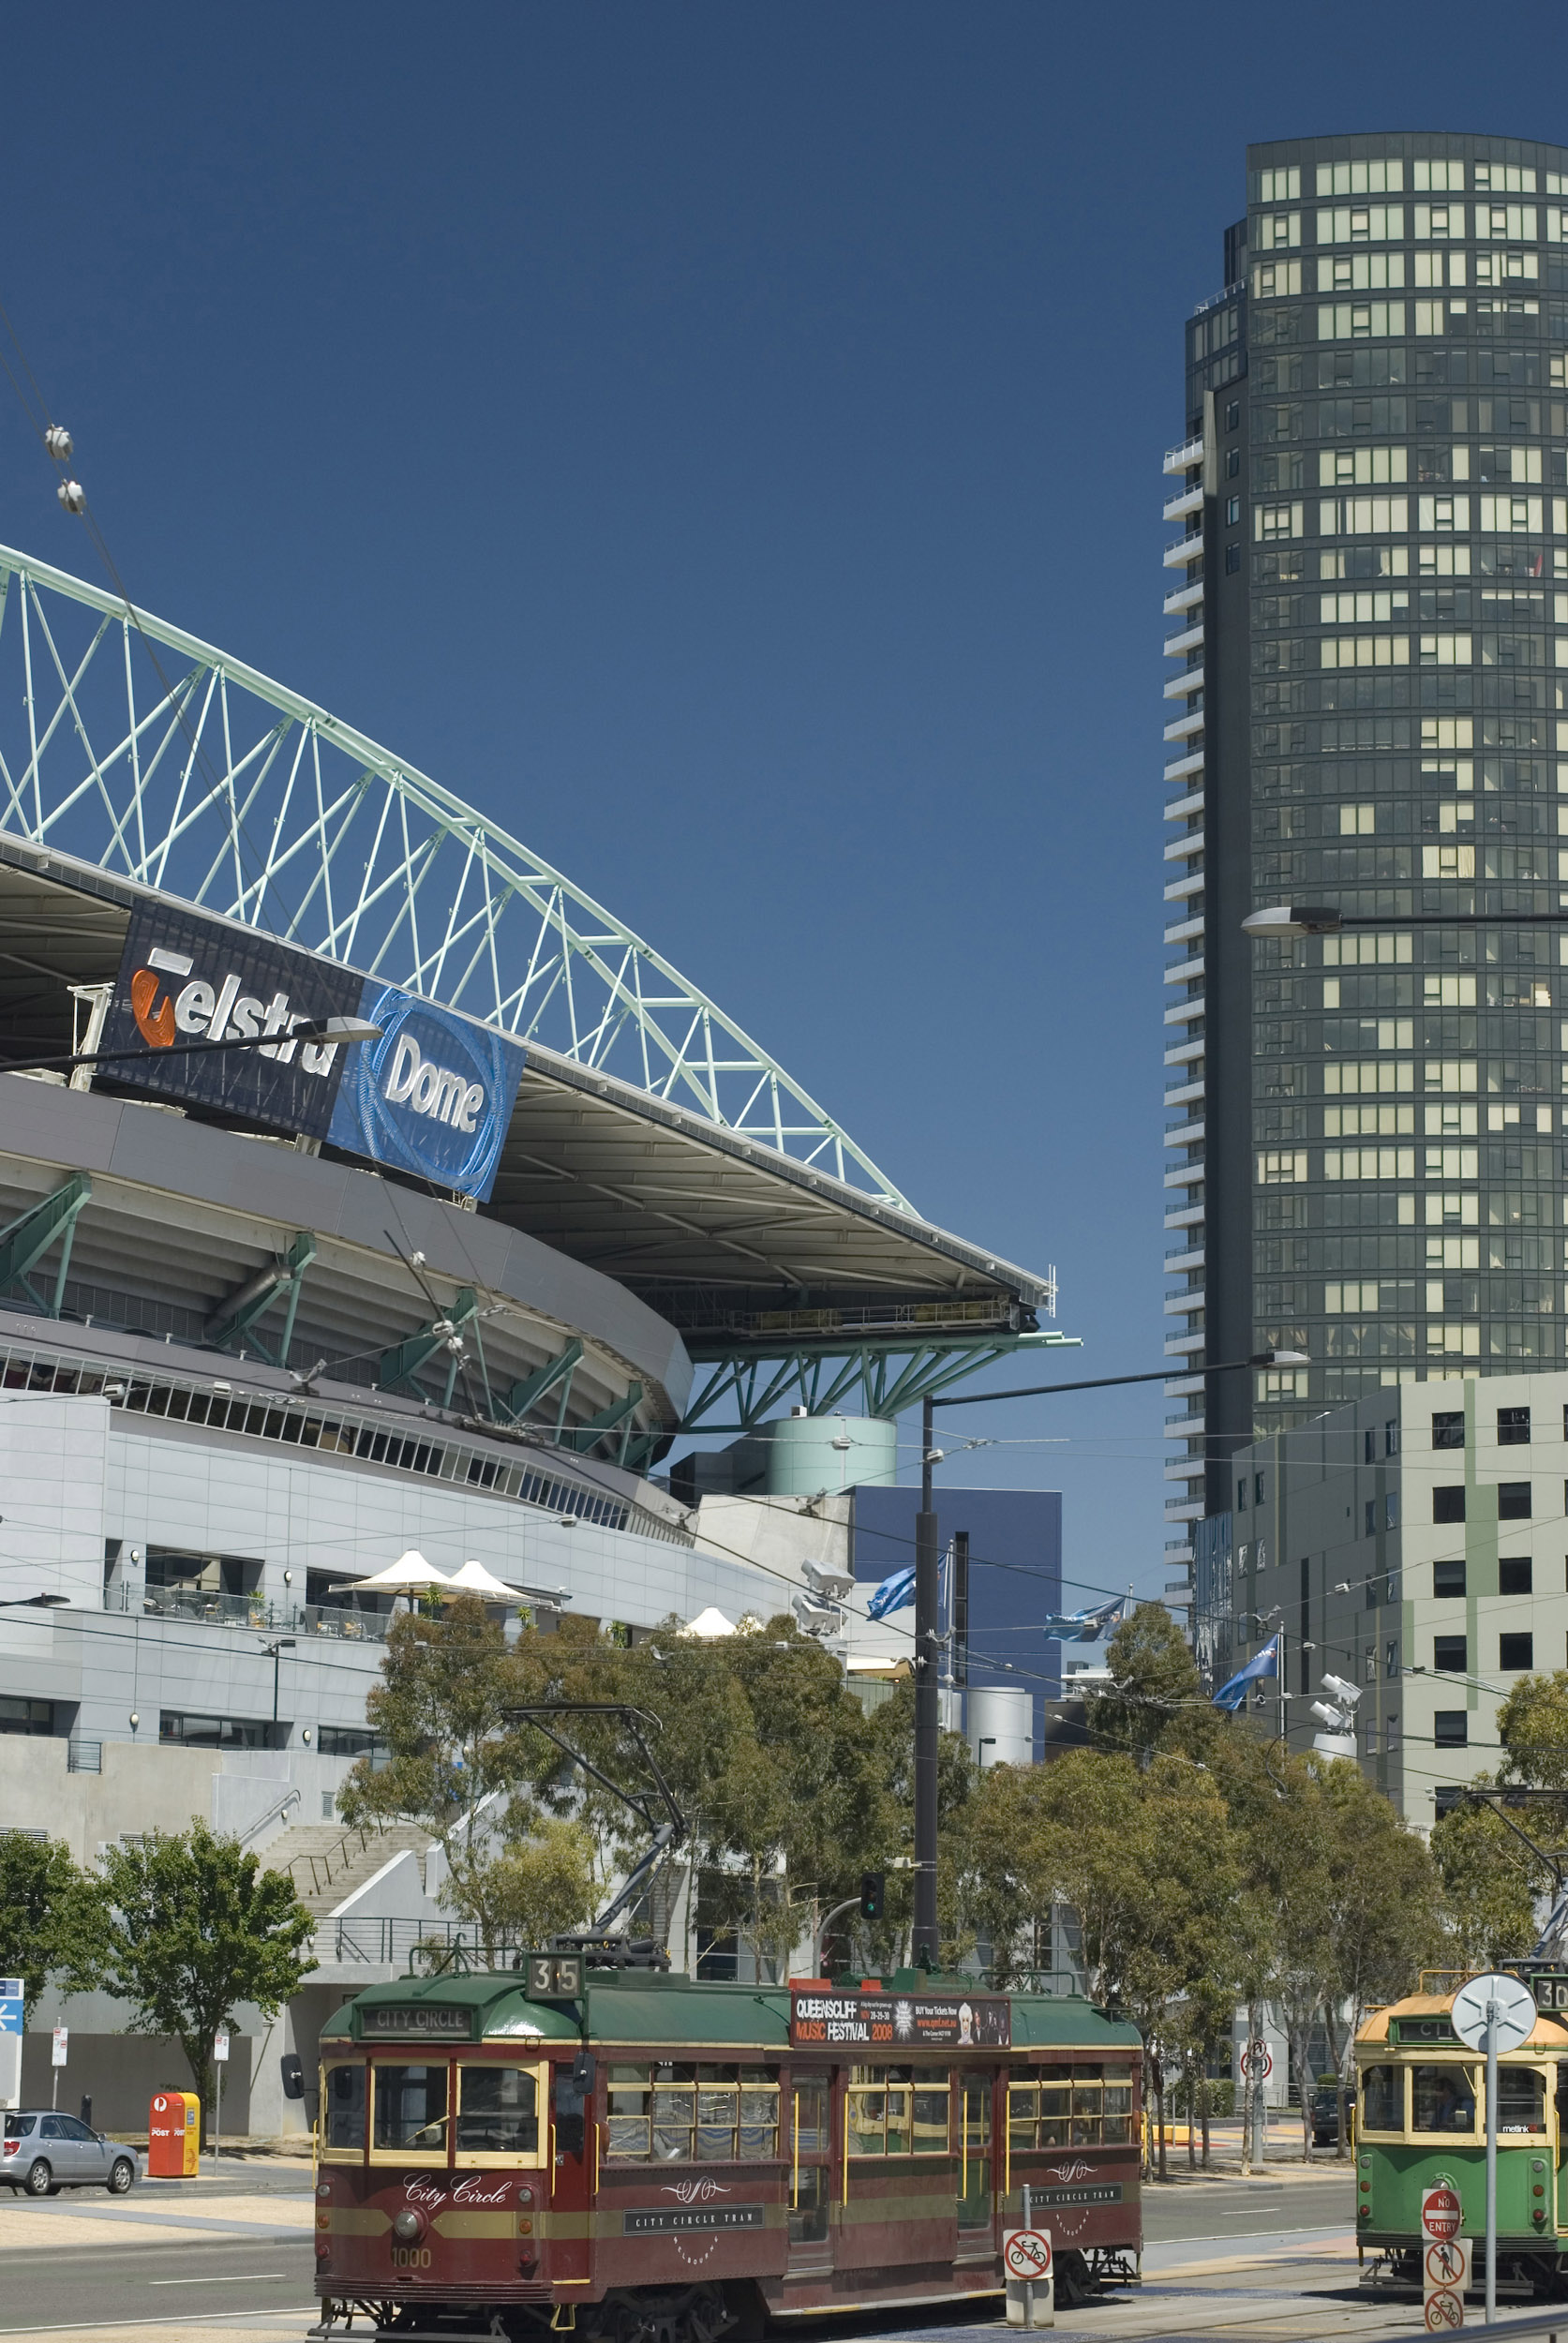 The exterior and city surrounding the Telstra Dome stadium in Melbourne, Australia.